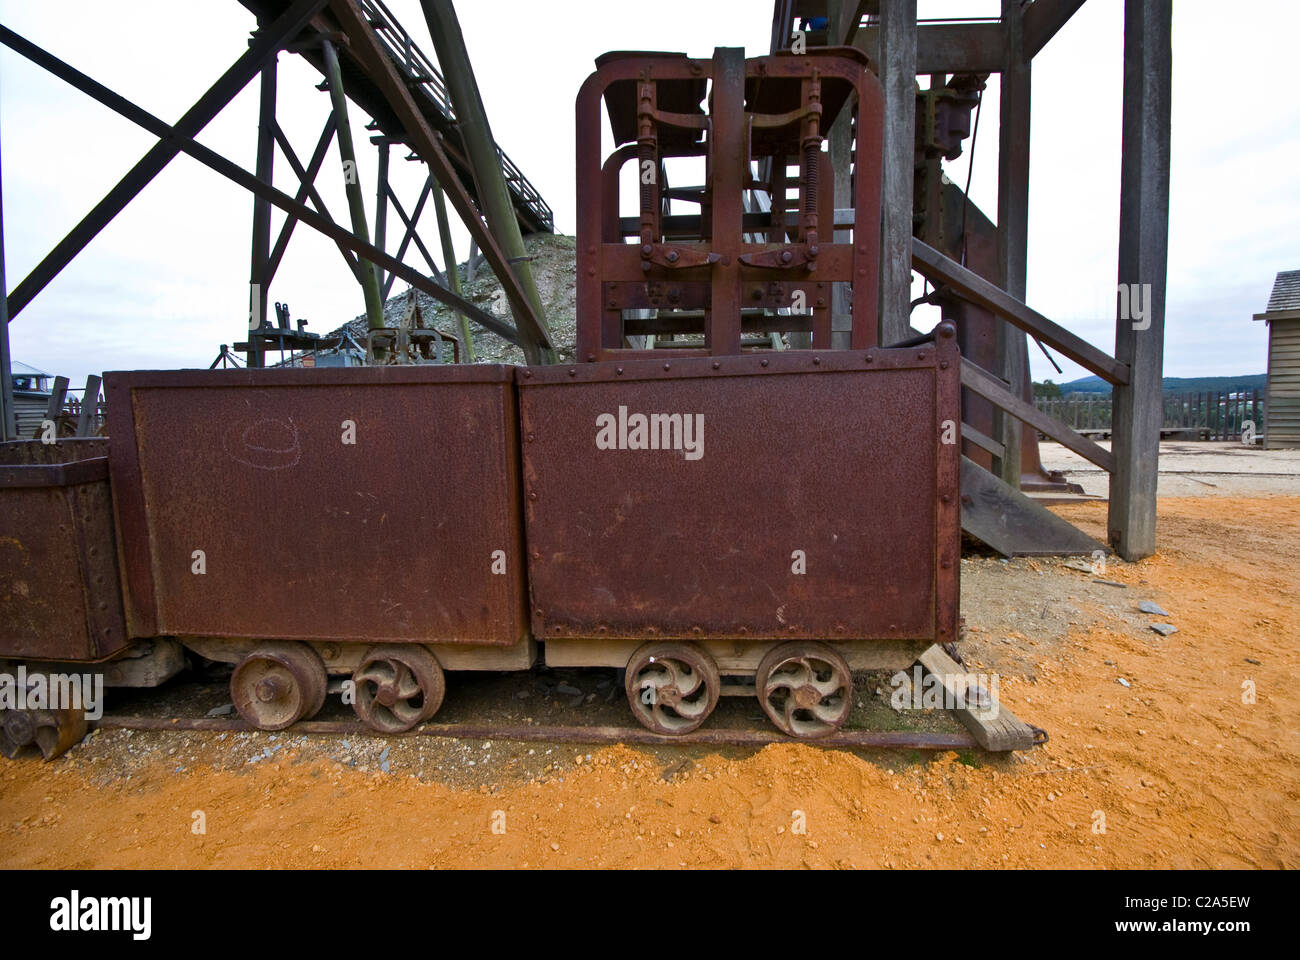 Heavy antique steel carriages used to remove ore from gold mines. - Stock Image